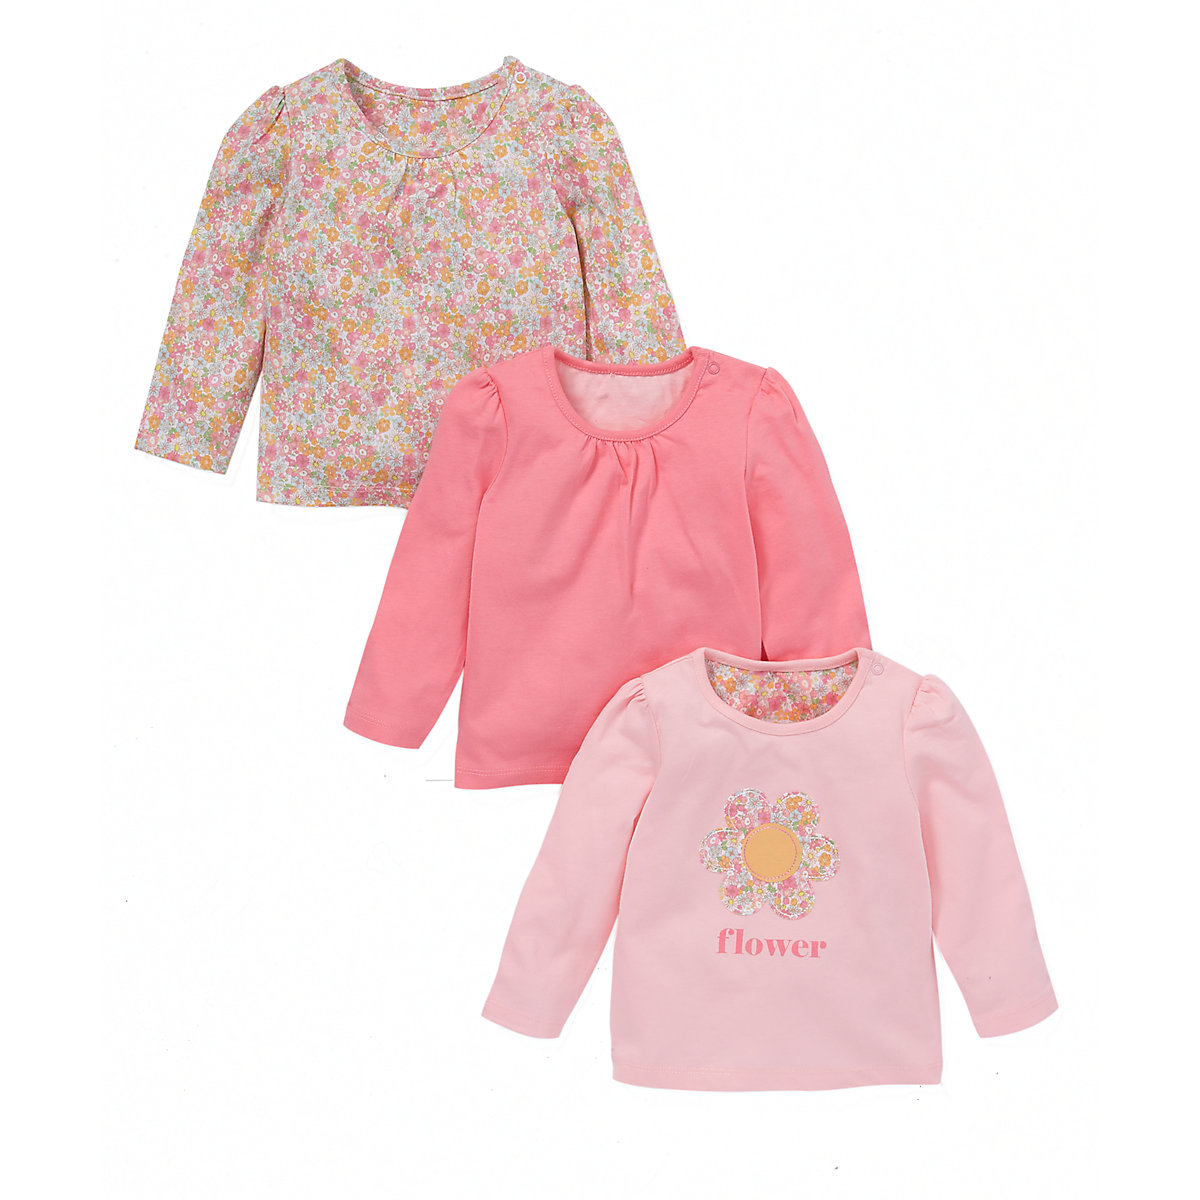 Mothercare Long Sleeve T-Shirts - 3 Pack